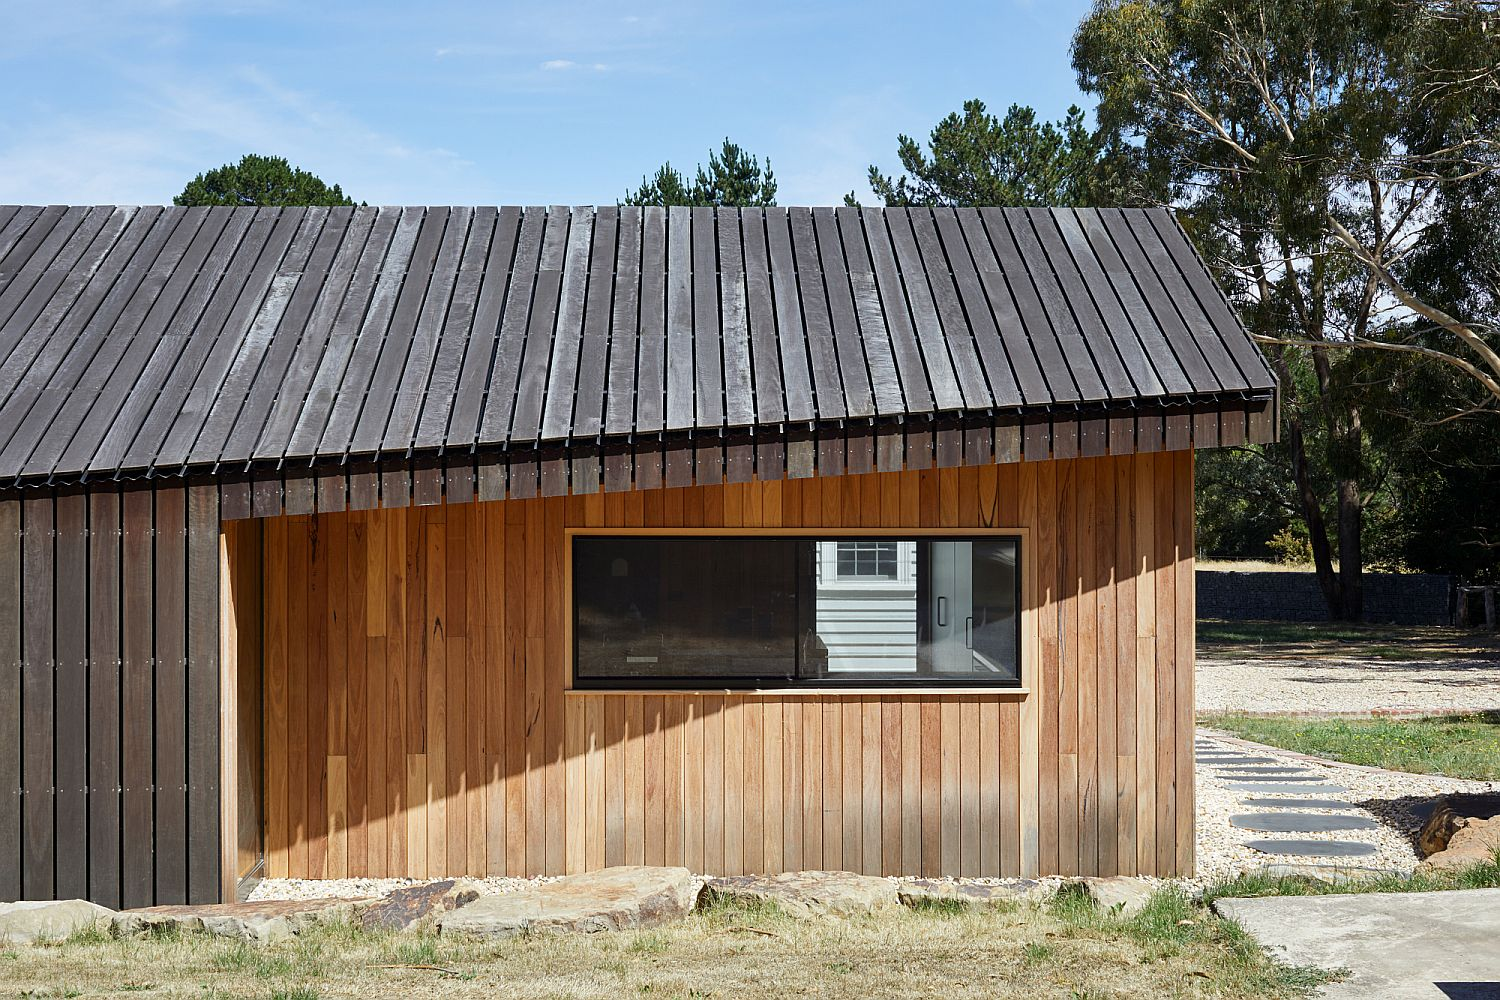 Black-stained-spotted-gum-decking-boards-for-the-exterior-of-the-extension